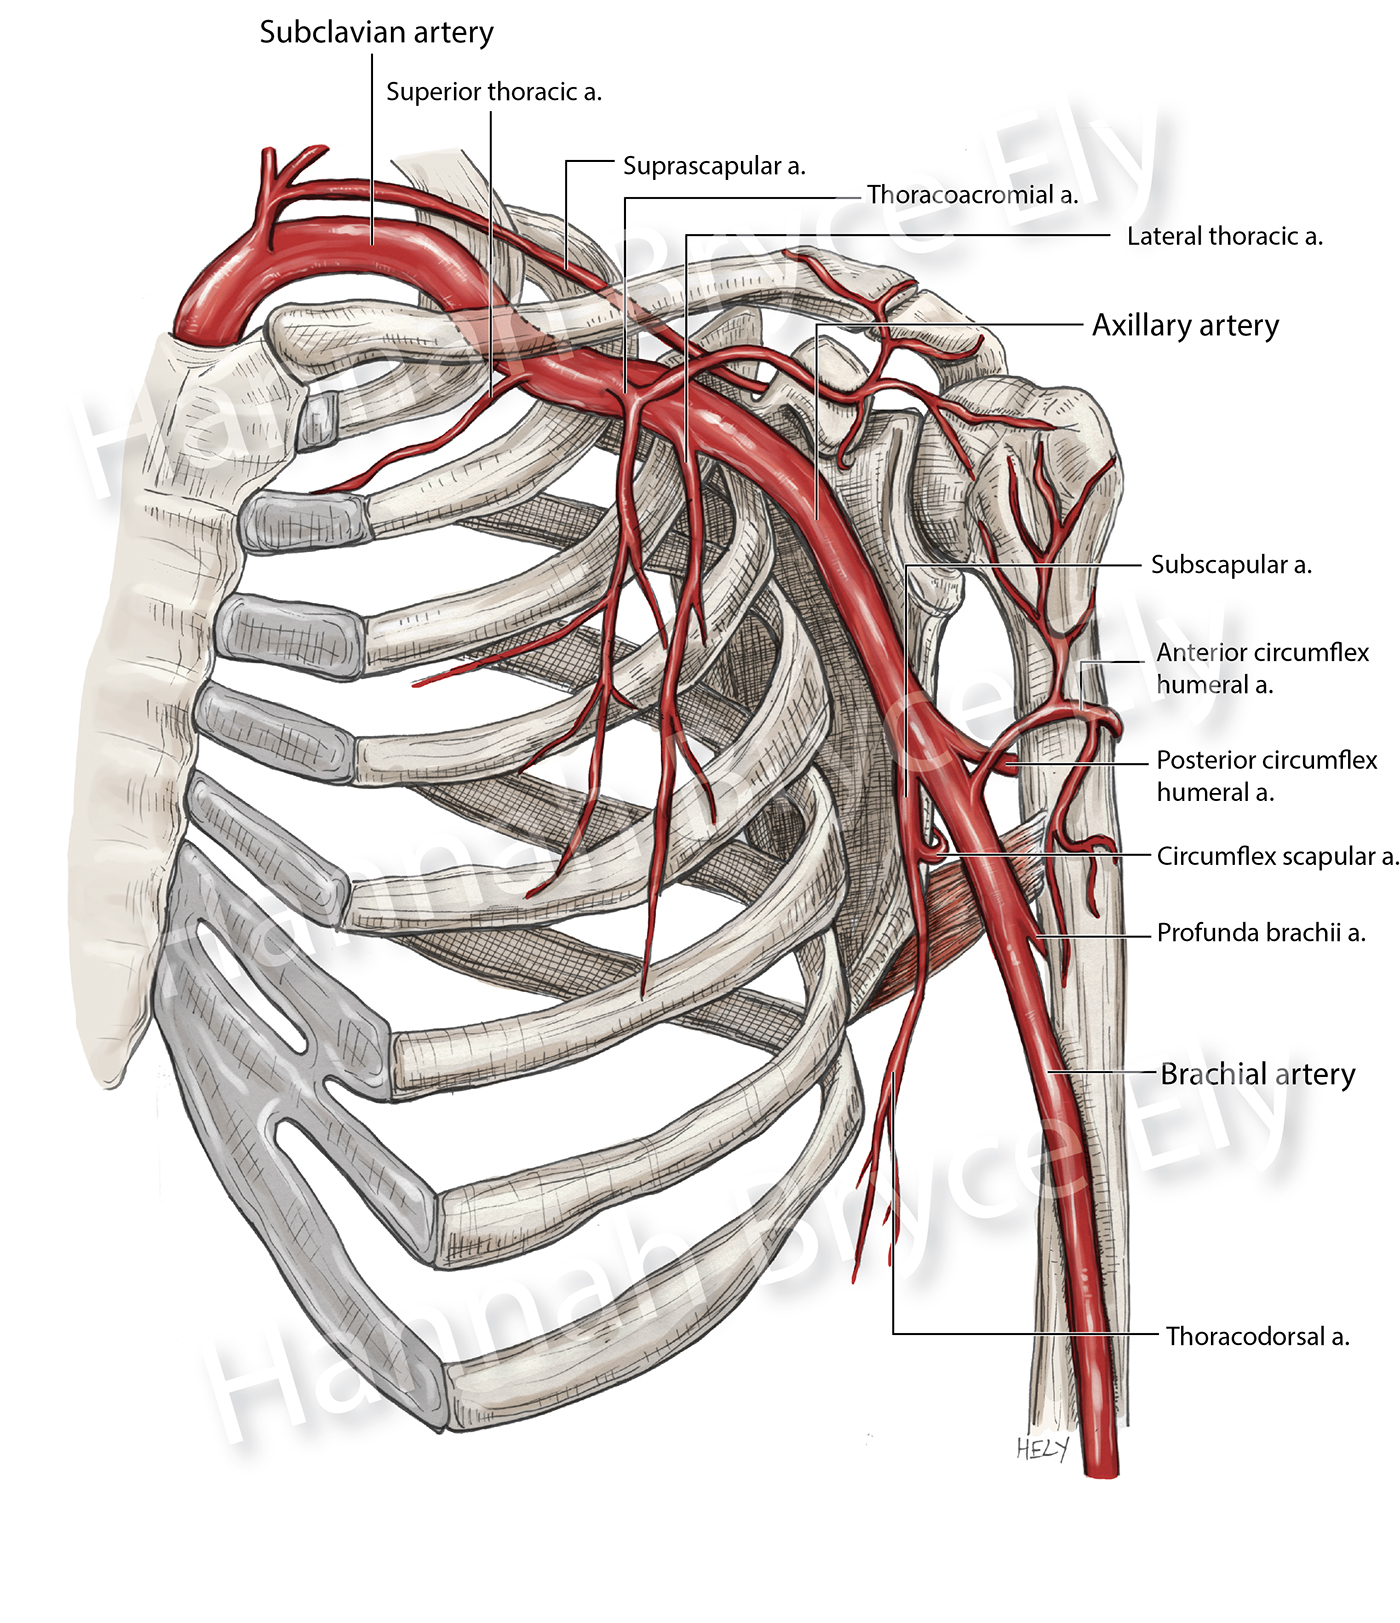 axillary artery and its branches on behance, Human Body